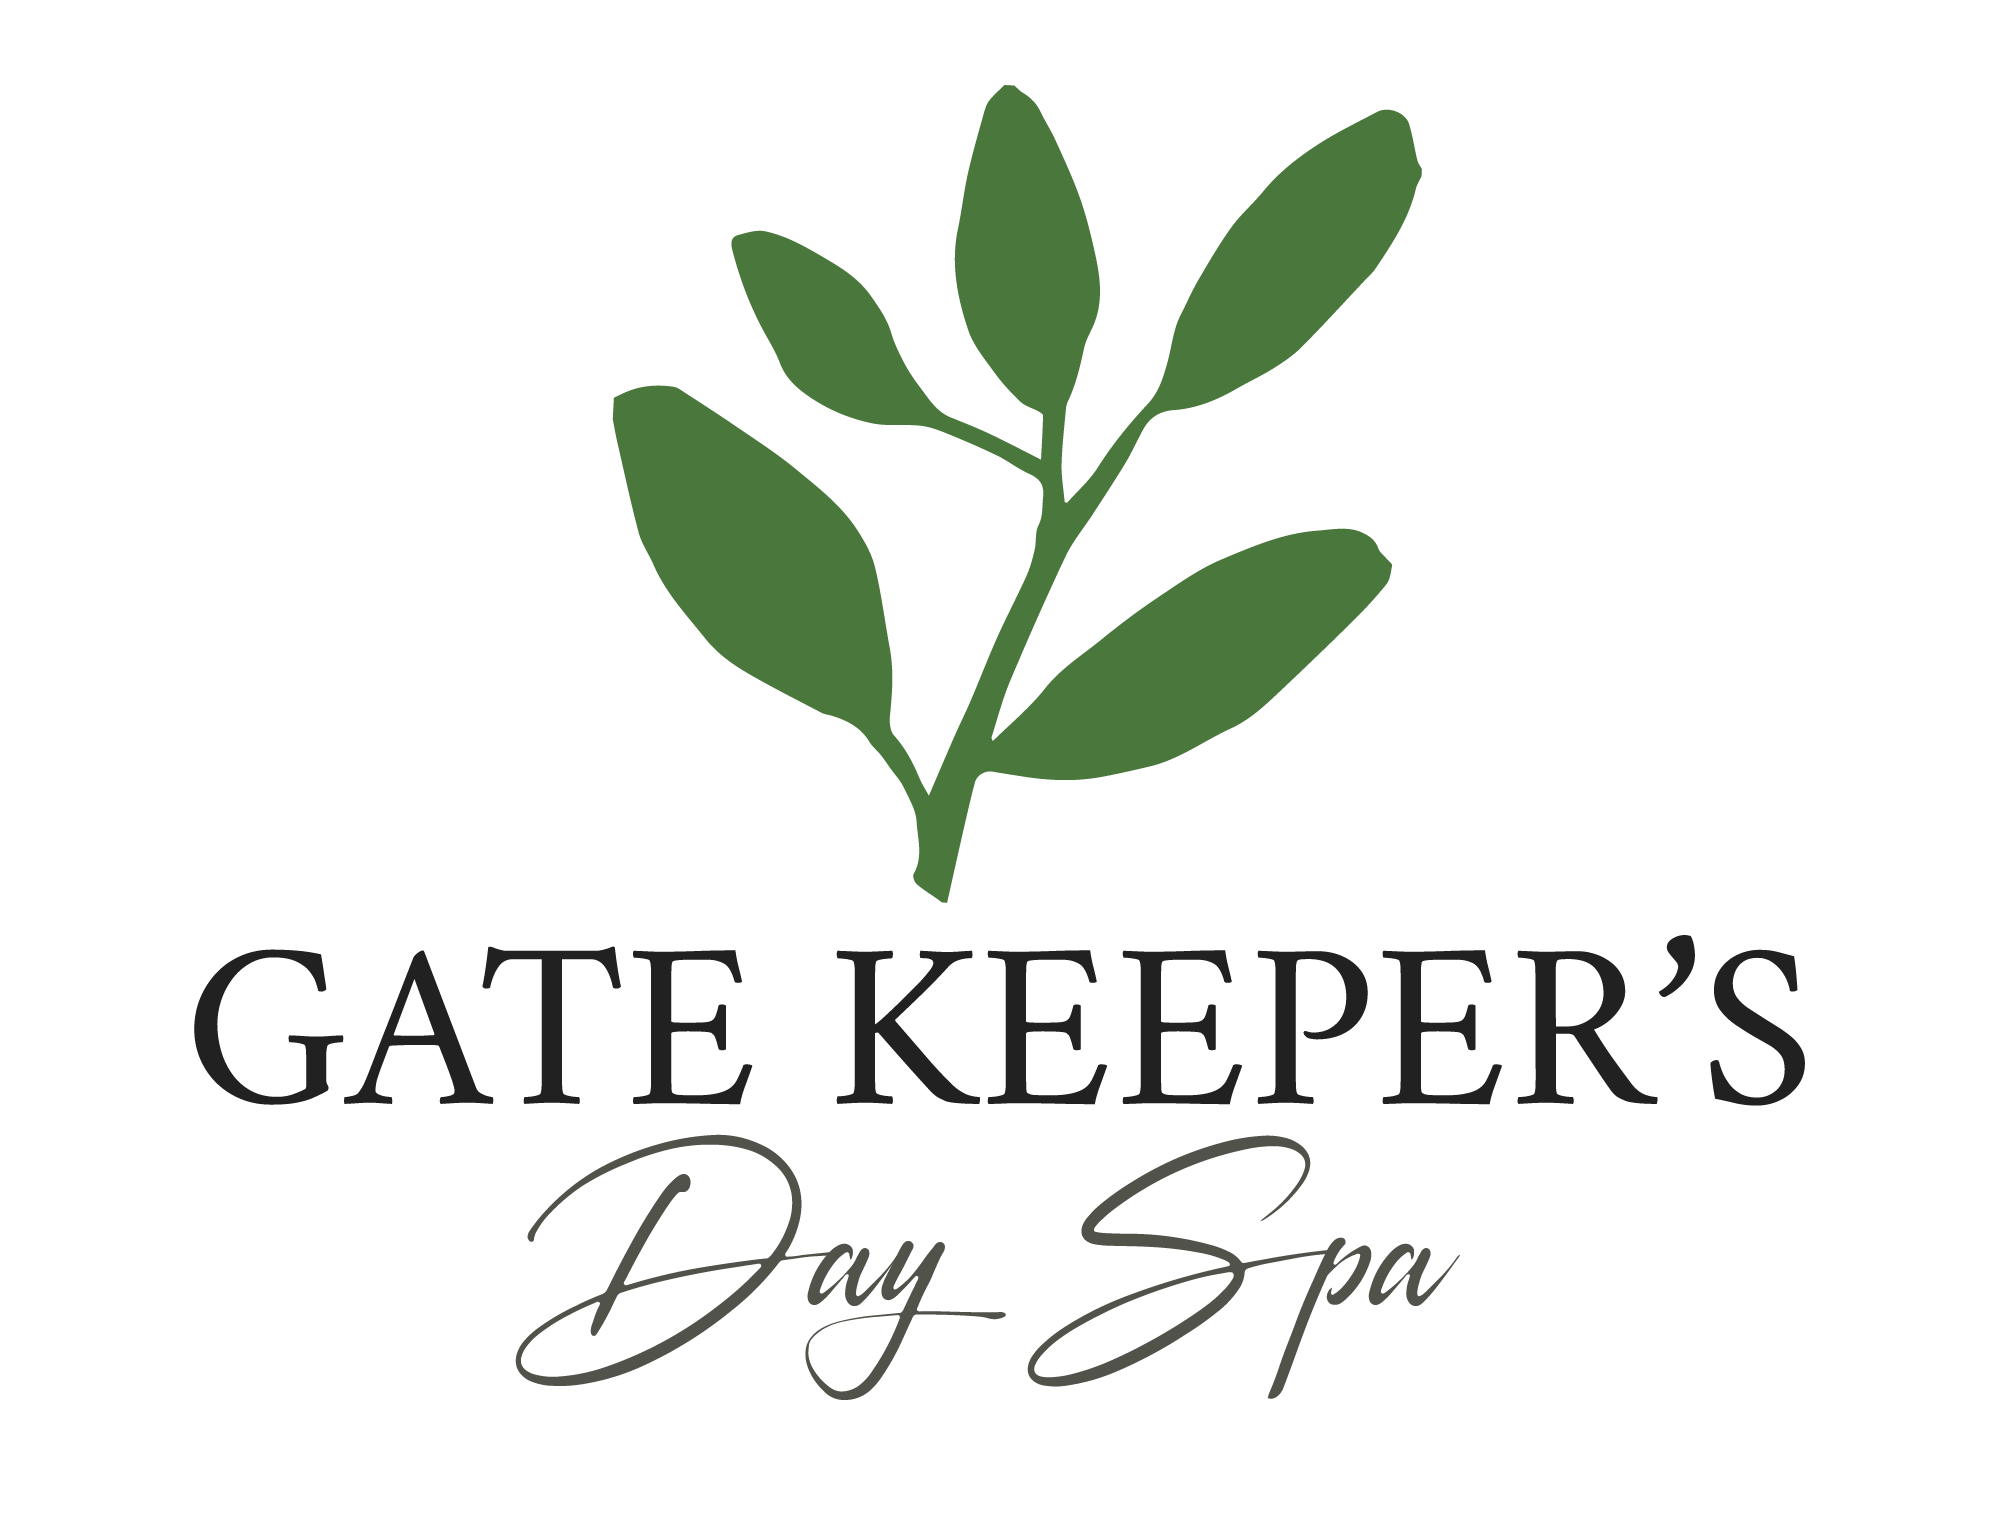 Gate Keeper's Day Spa